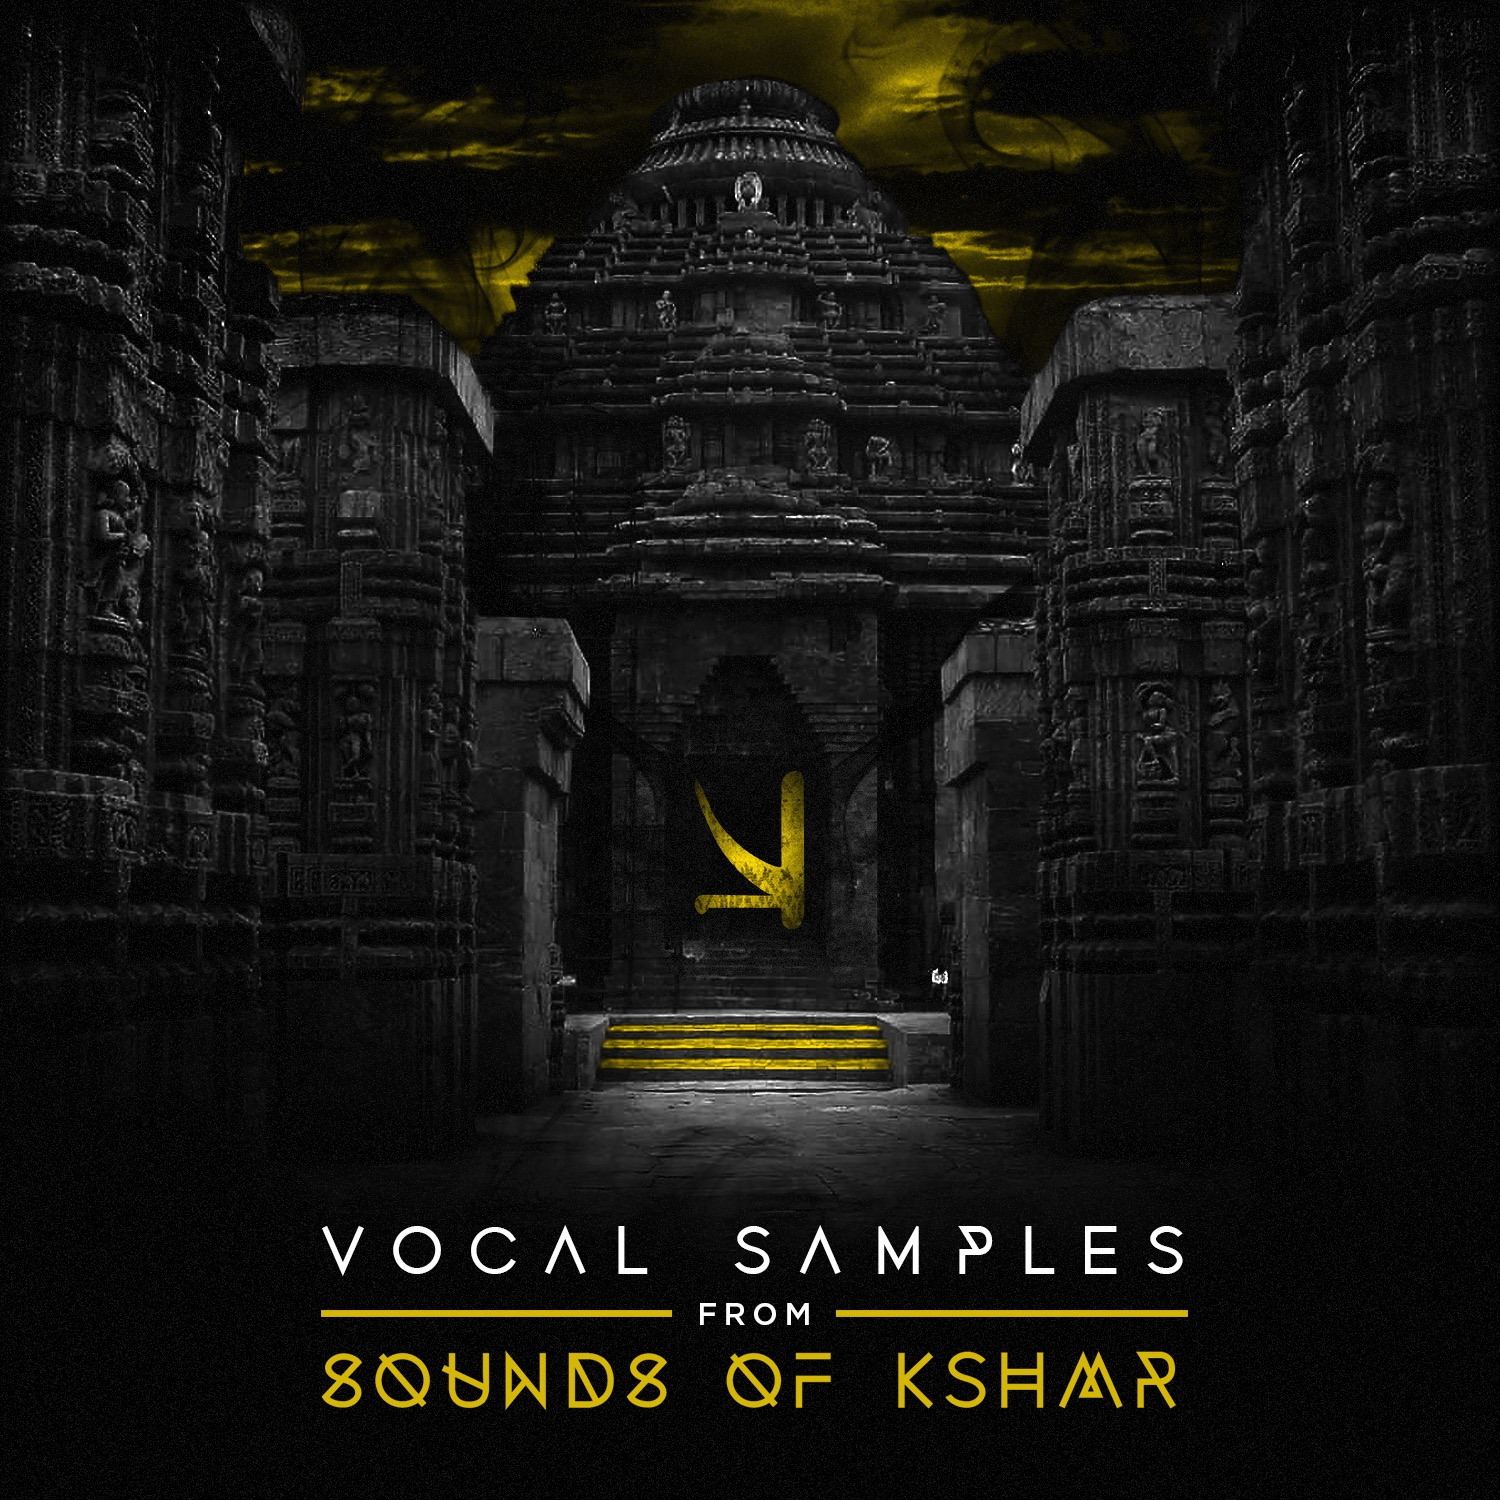 Vocal Samples from Sounds of KSHMR Samples and Loops